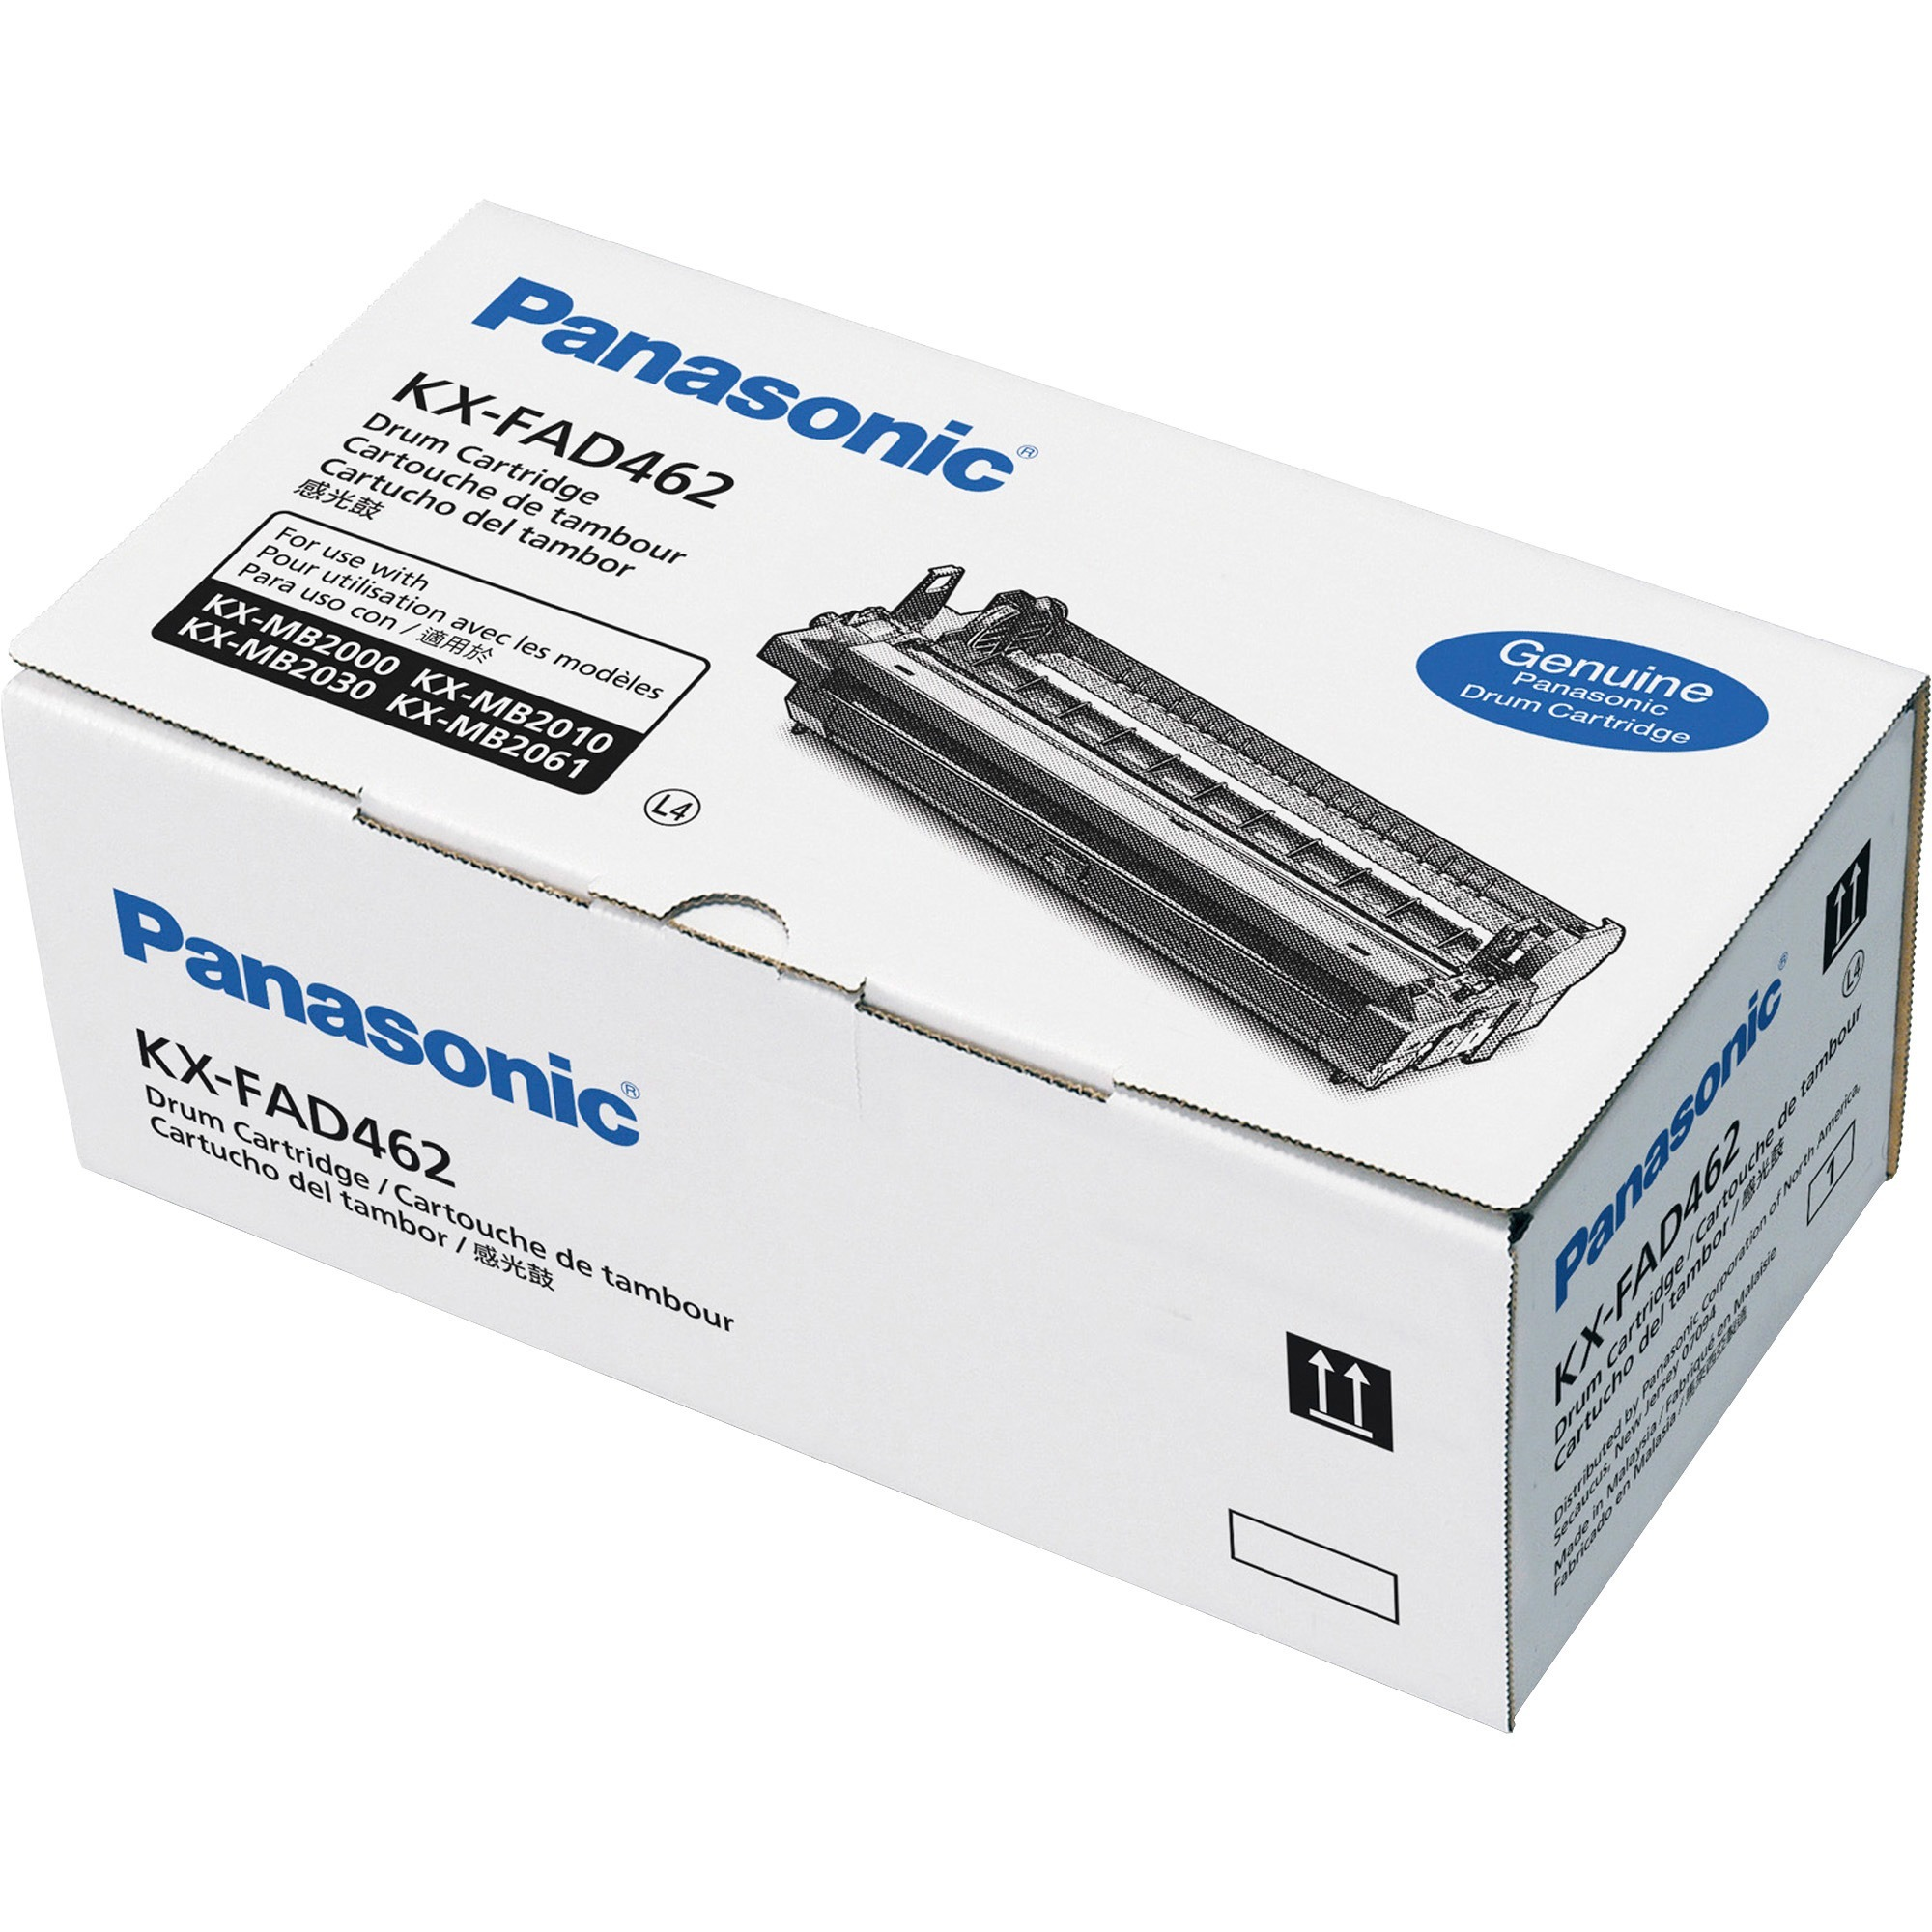 Panasonic KXFAD462 Replacement Drum Cartridge, 1 Each (Quantity)